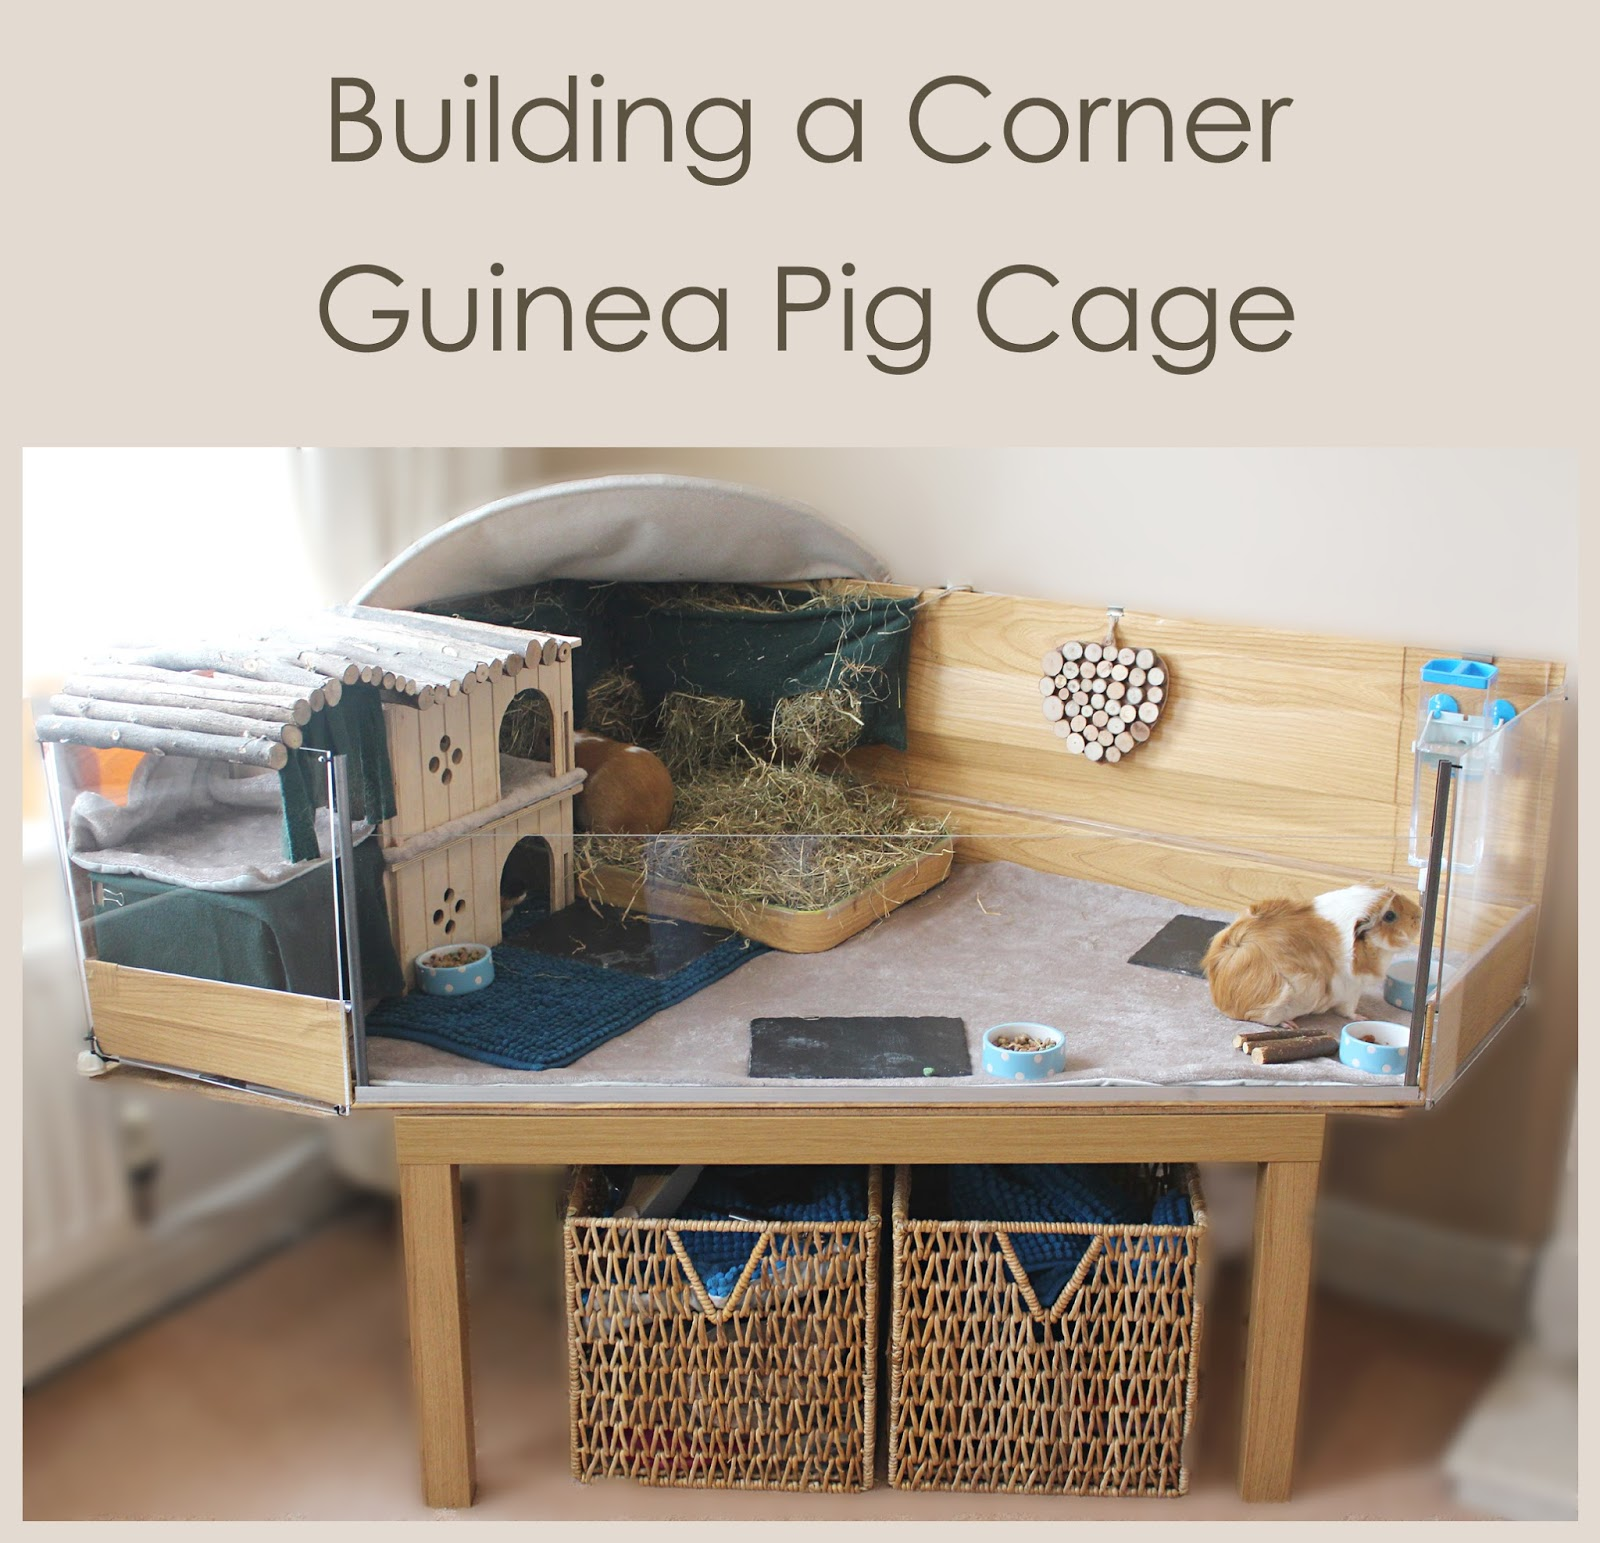 Building a corner diy c and c style guinea pig cage with a for Guinea pig dresser cage